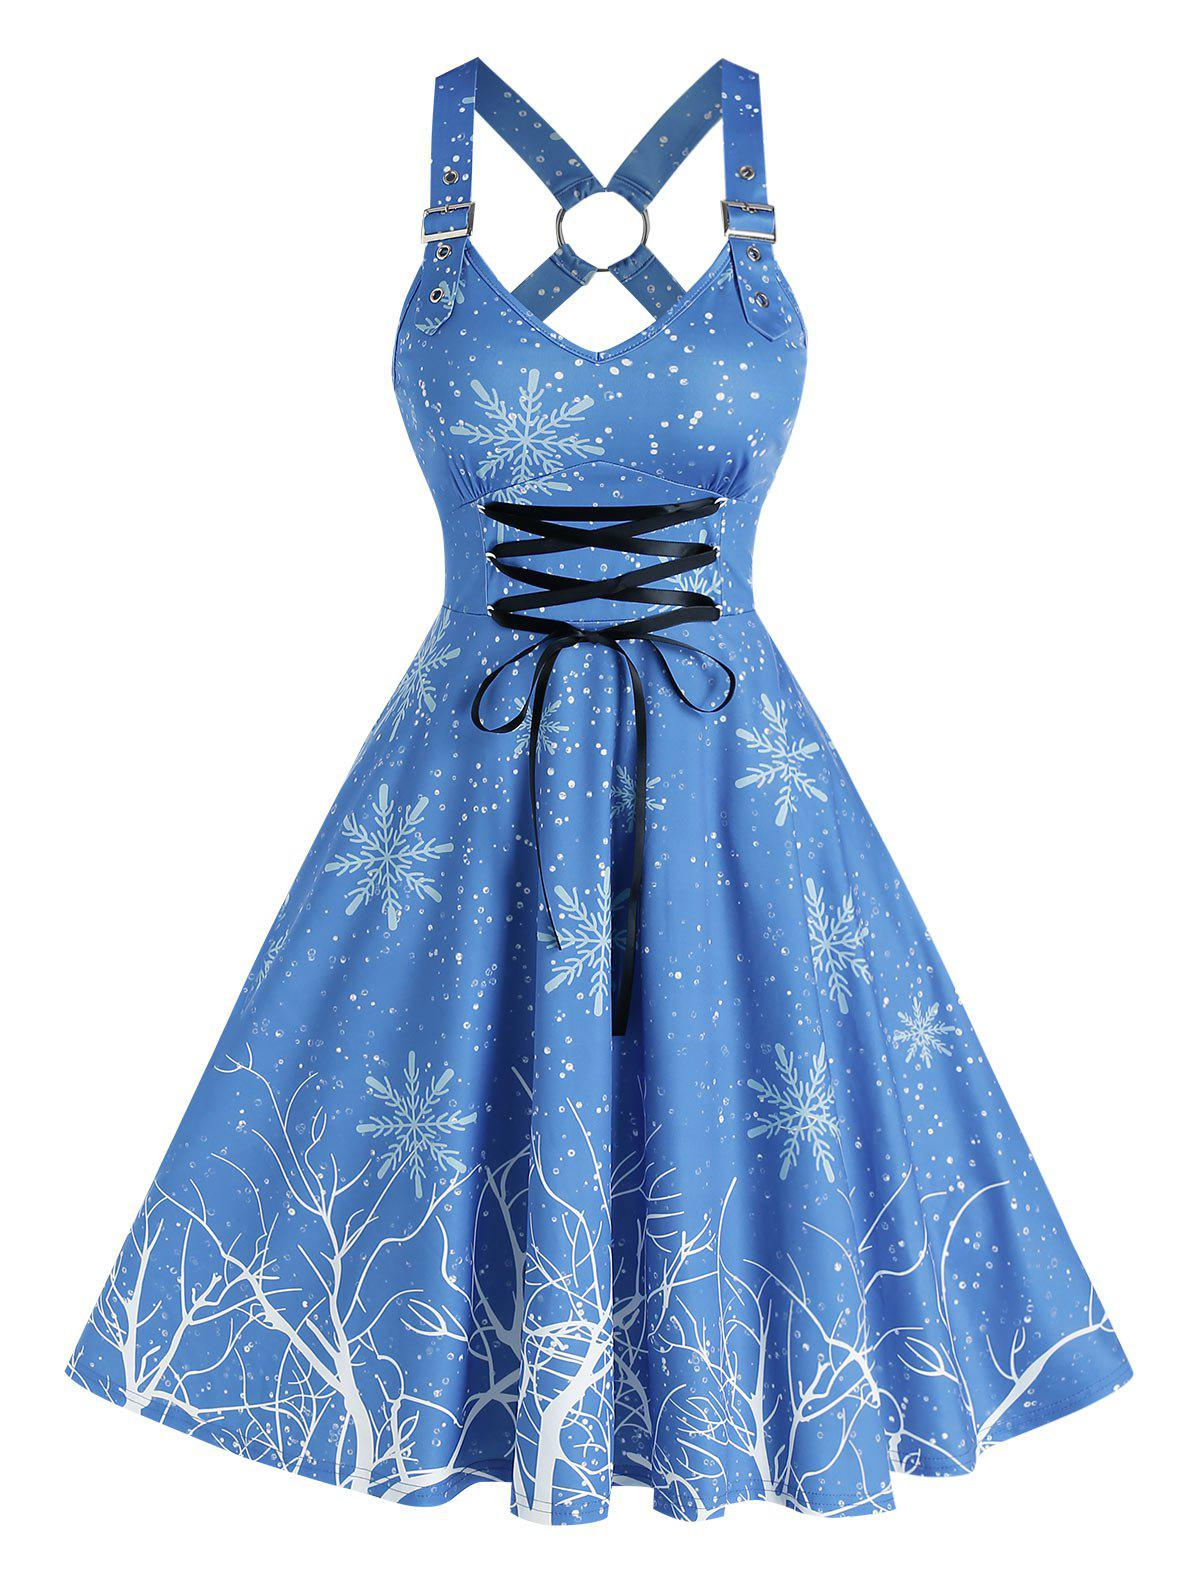 Discount Snowflake Printed Lace Up A Line Dress